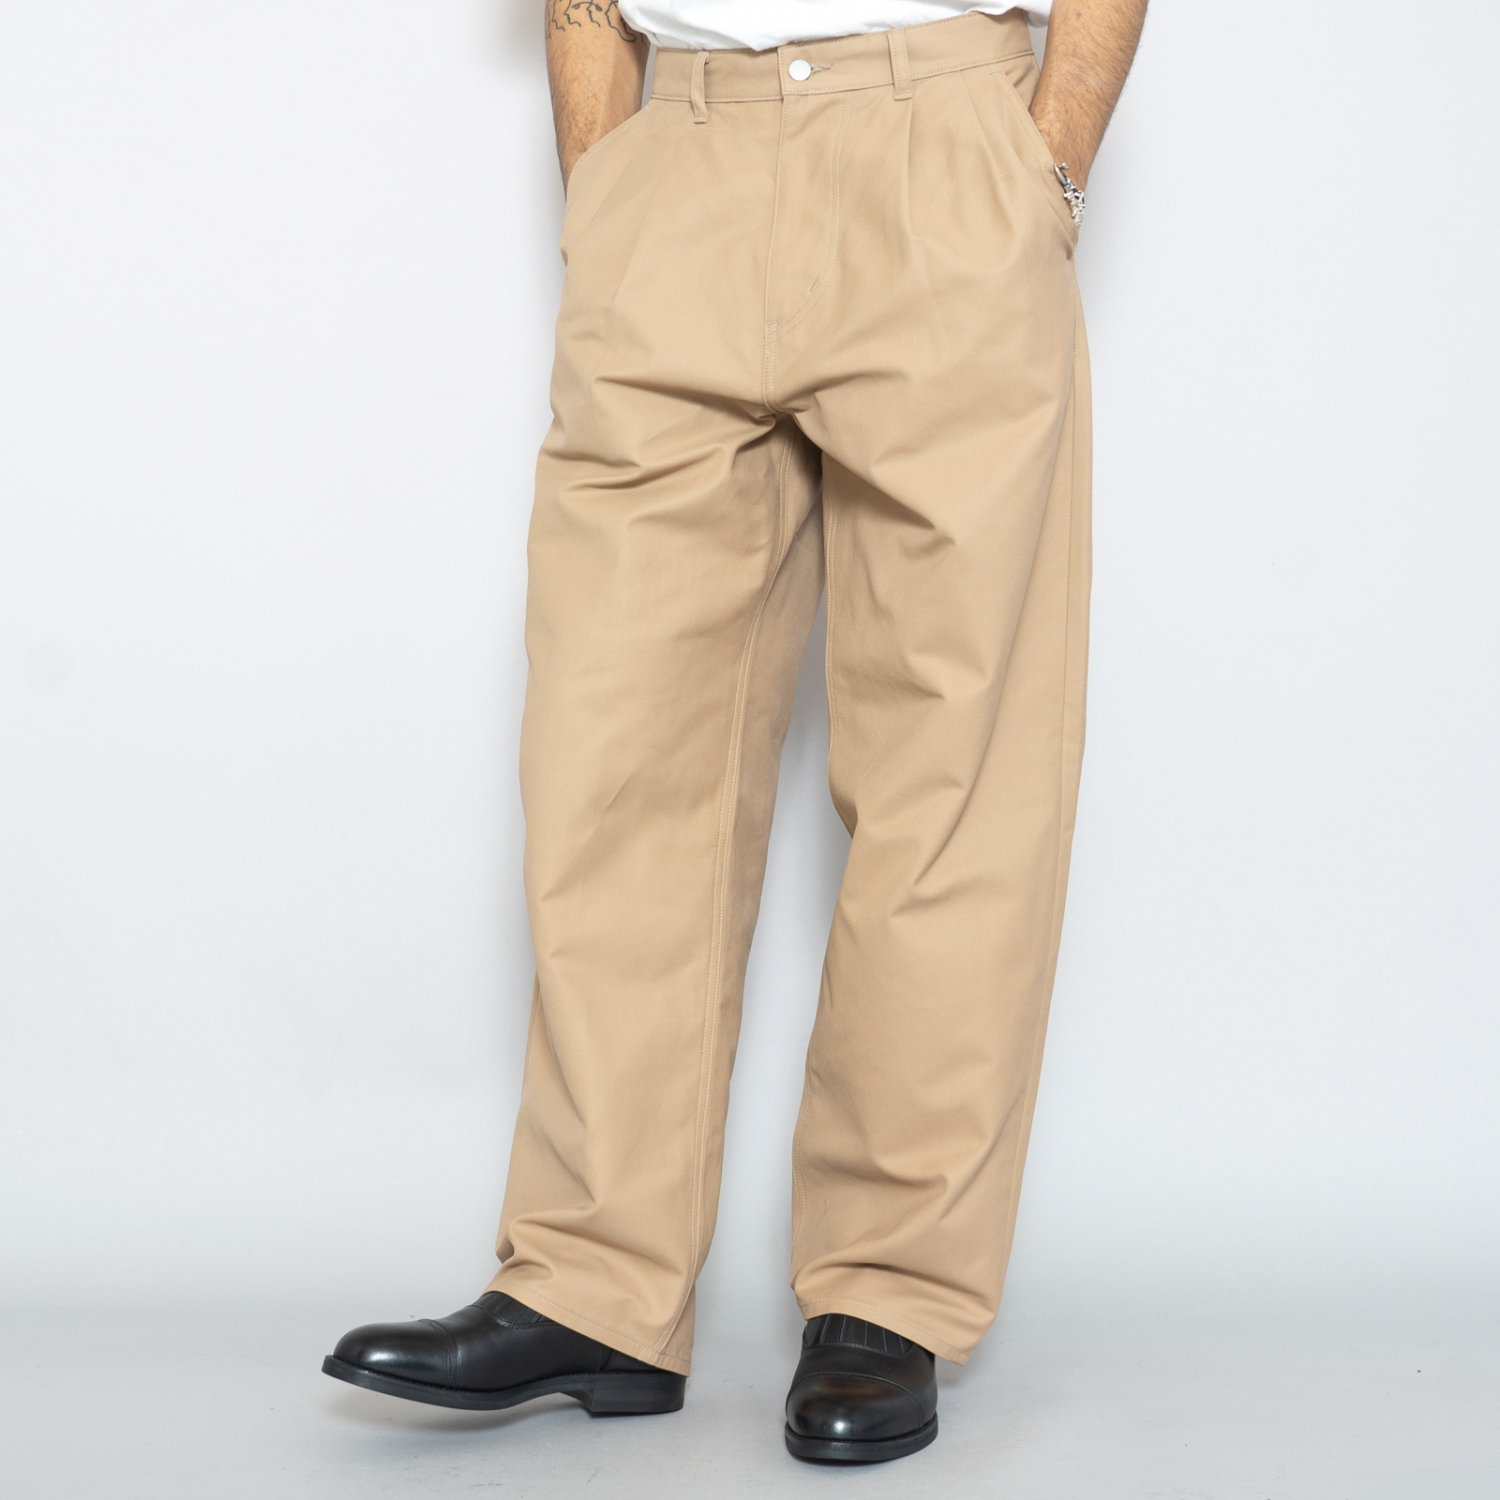 Graphpaper * Double Cloth Peach Two Tuck Pants * Beige